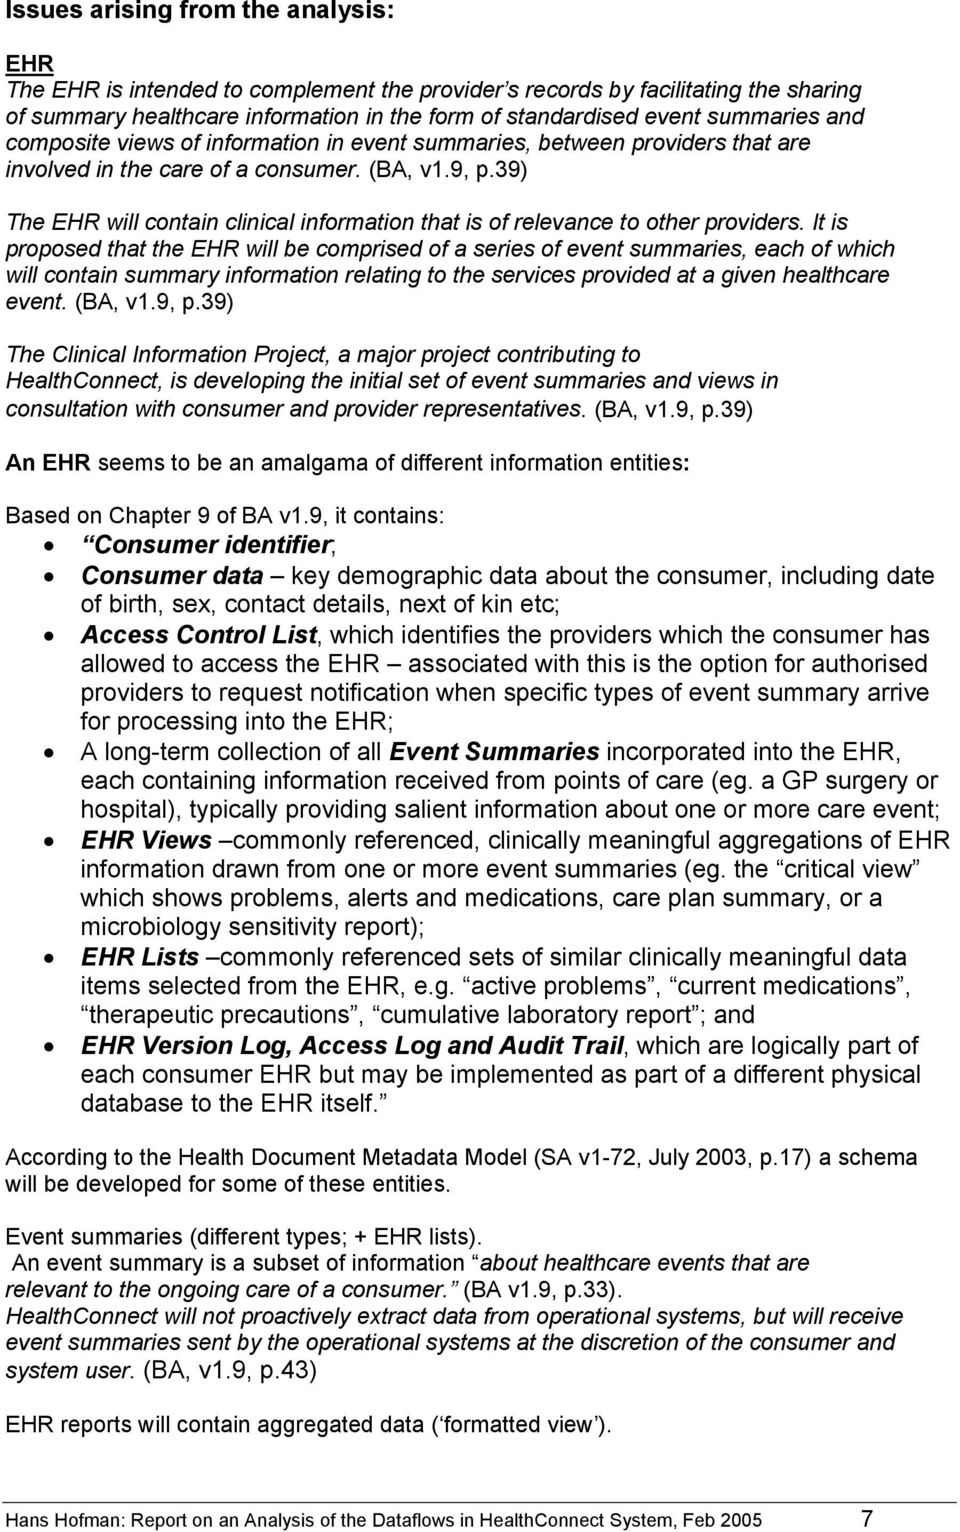 39) The EHR will contain clinical information that is of relevance to other providers.